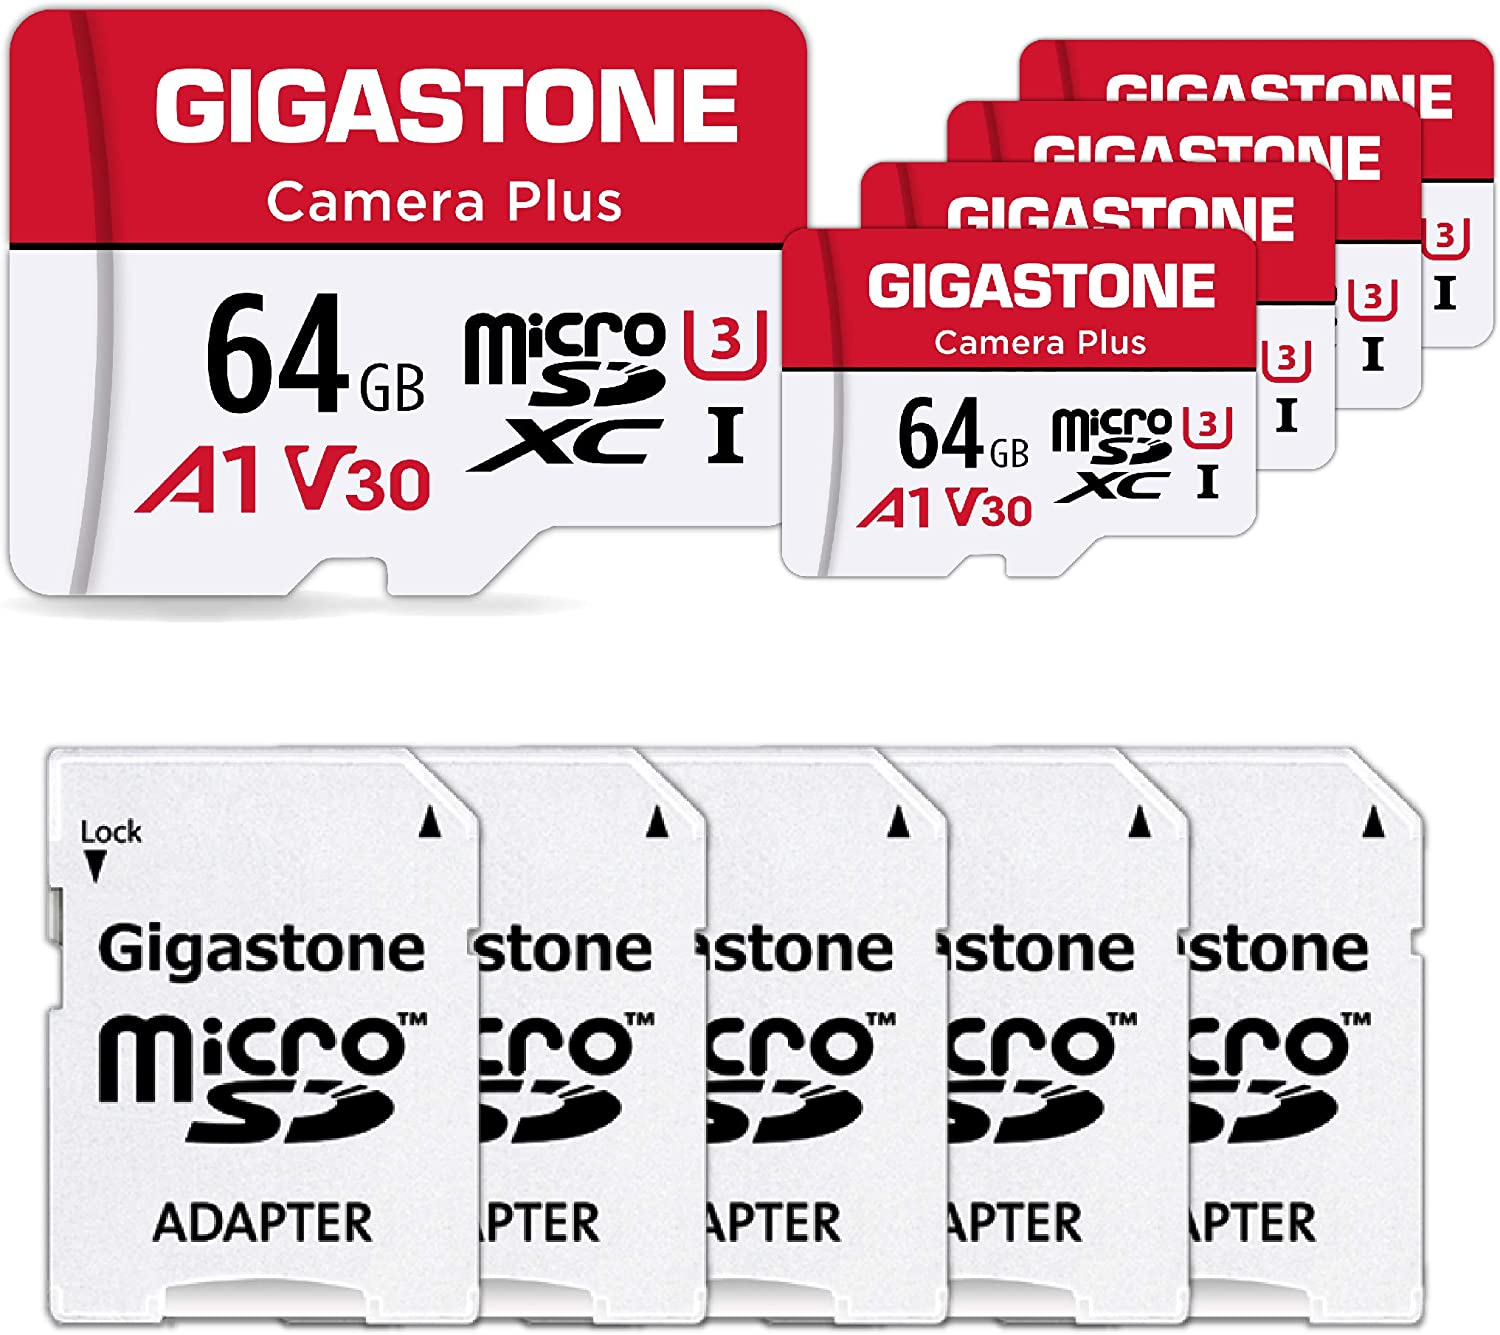 [Gigastone] 64GB 5-Pack Micro SD Card, Camera Plus, MicroSDXC Memory Card for Wyze, Video Camera, Security Camera, Smartphone, Fire tablet, 4K Video Recording, UHS-I U3 A1 V30, 95MB/s, with Adapter